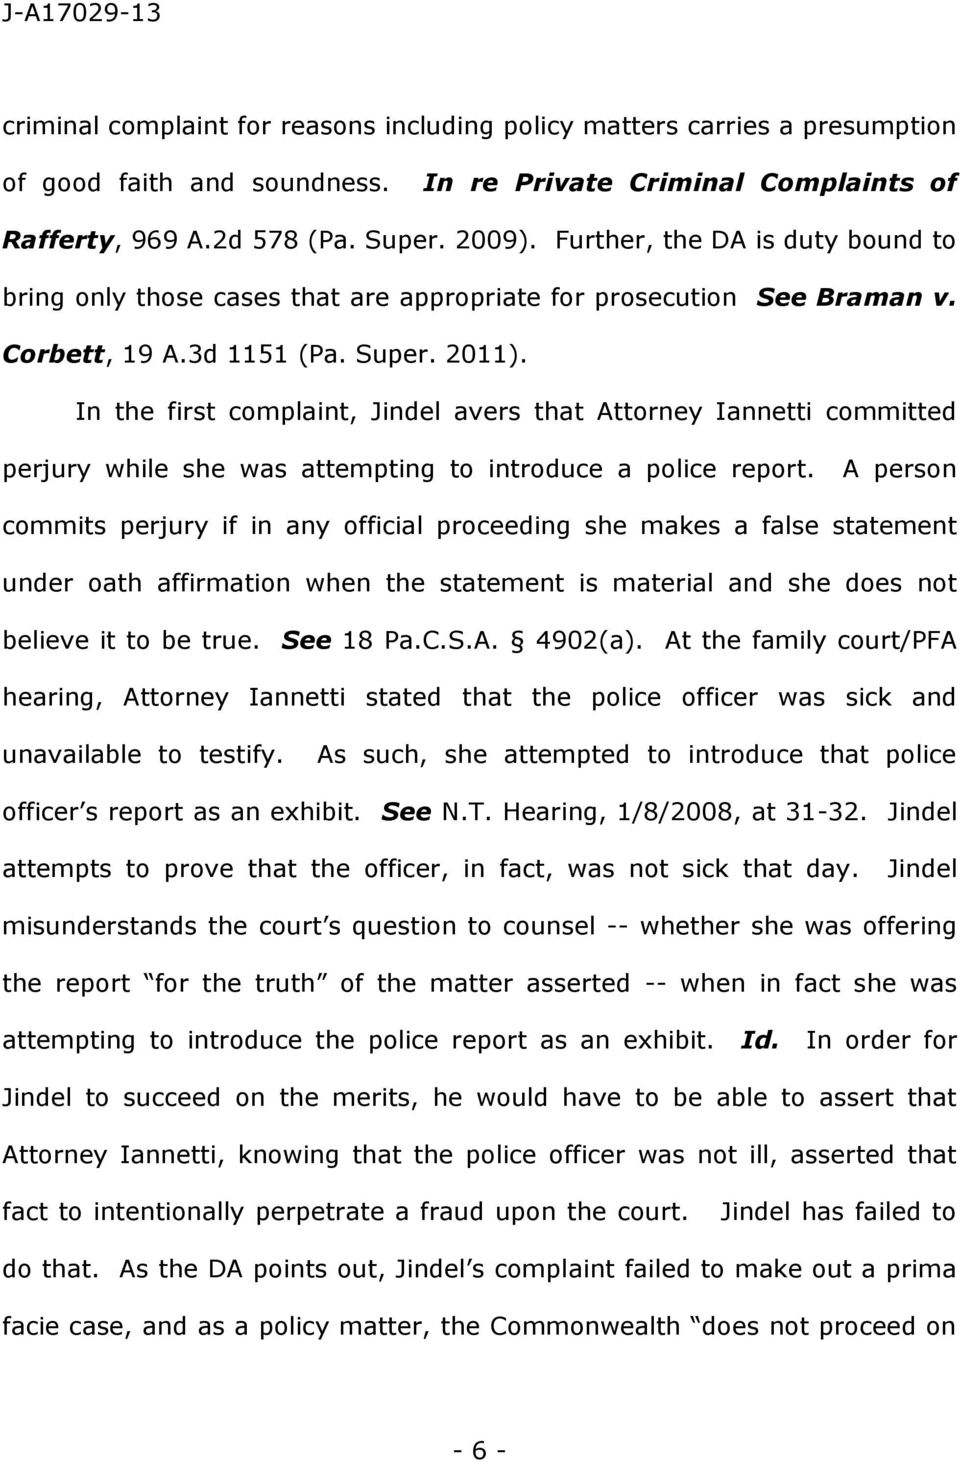 In the first complaint, Jindel avers that Attorney Iannetti committed perjury while she was attempting to introduce a police report.